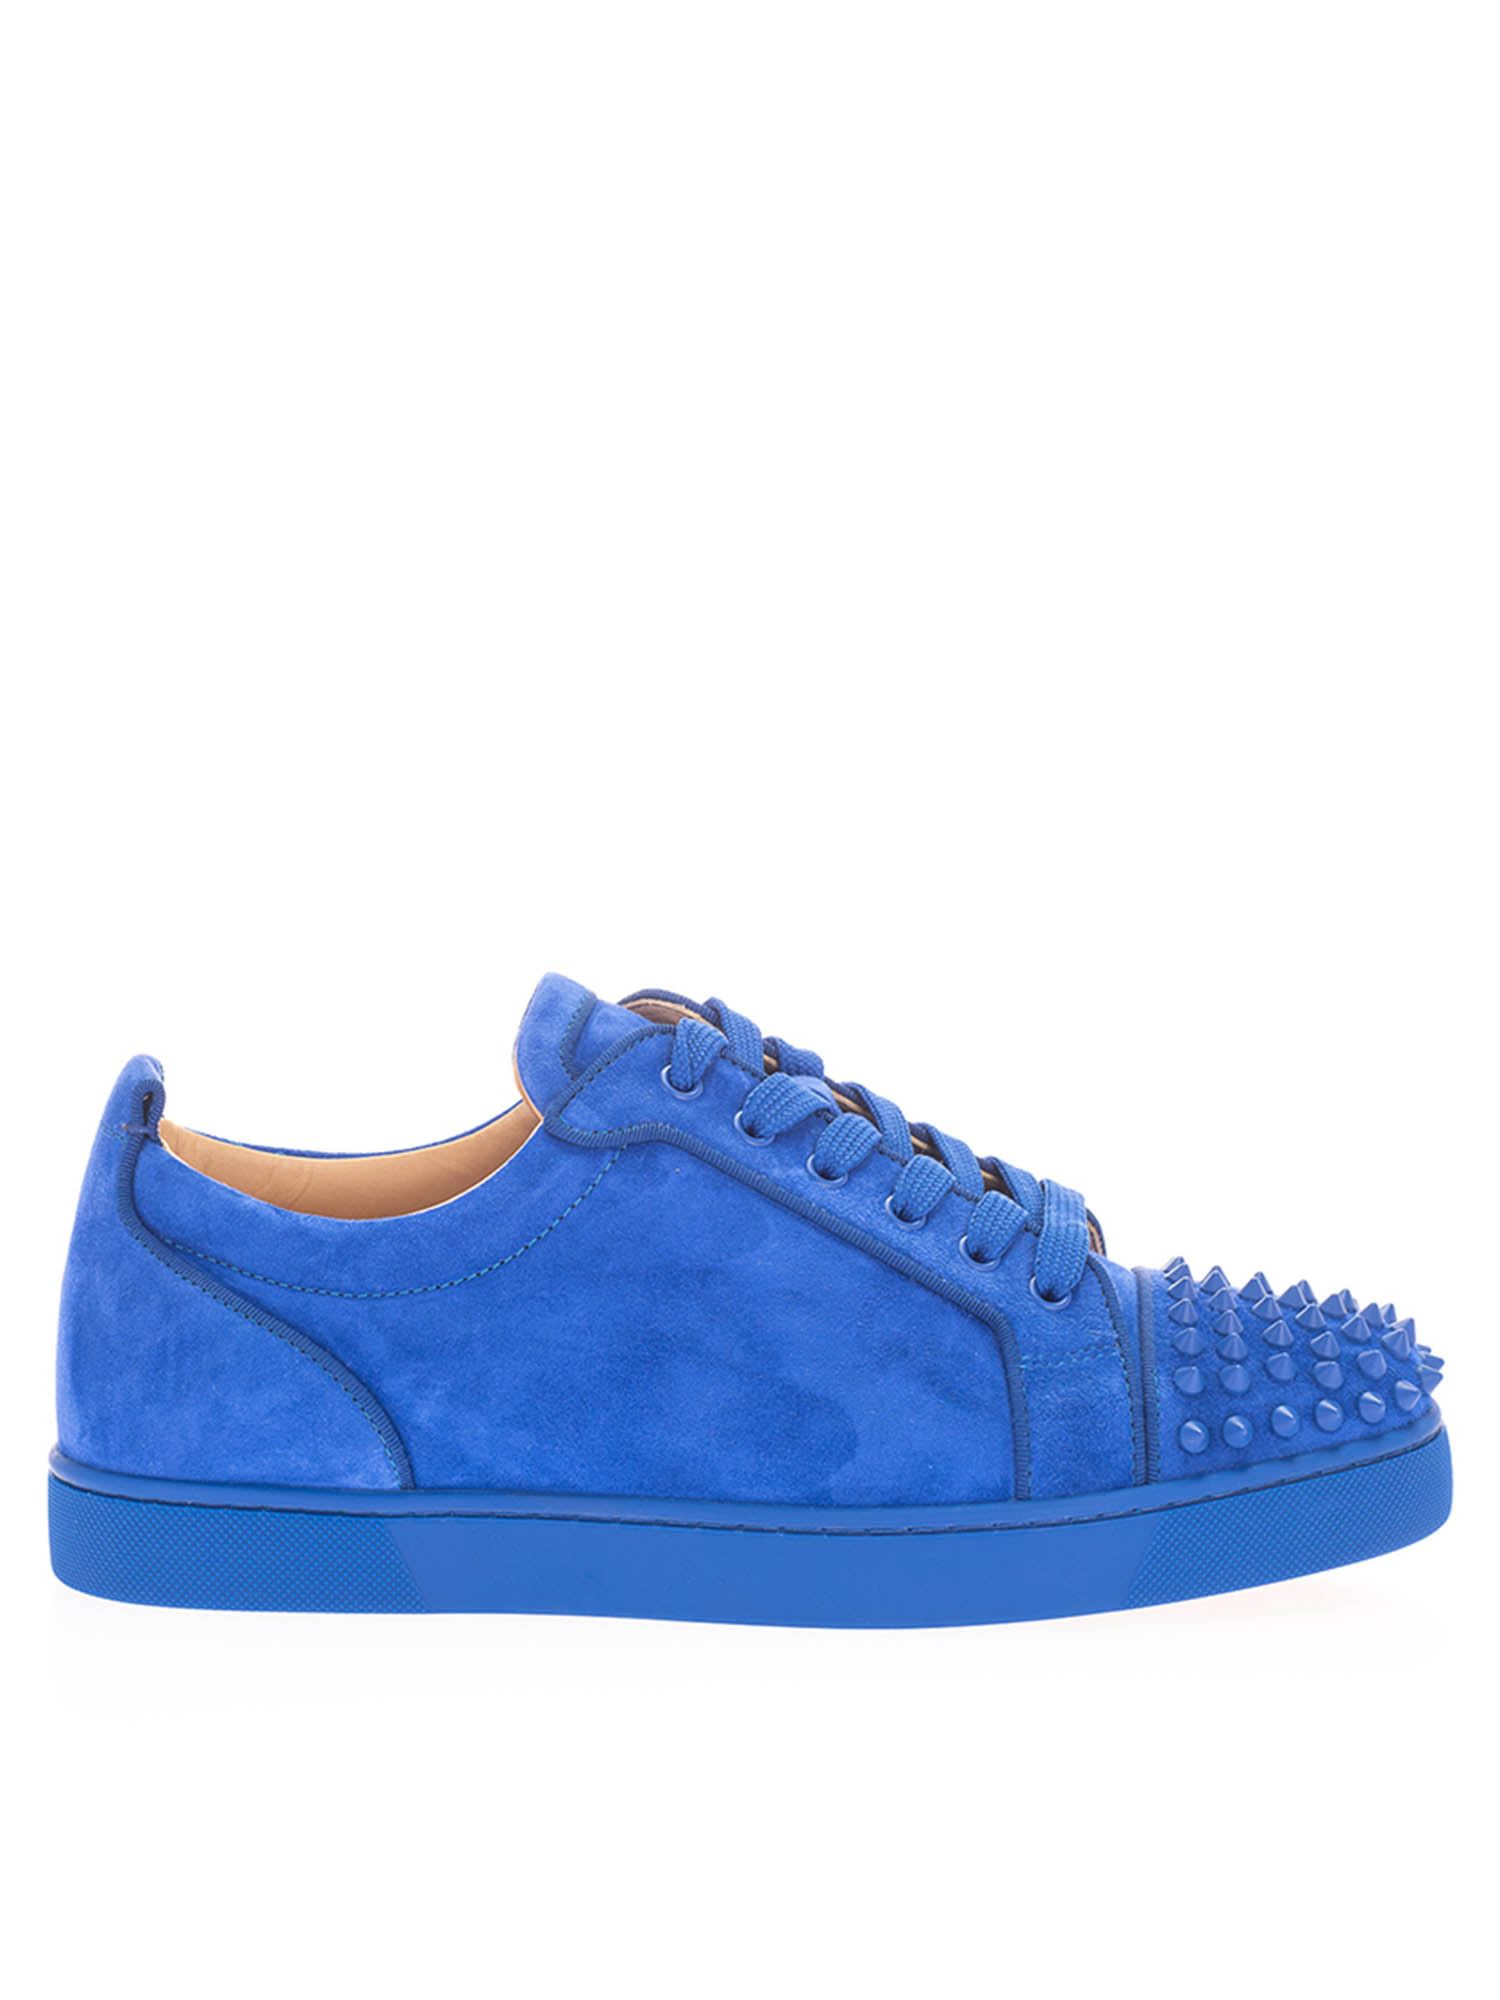 Christian Louboutin Sneakers JUNIOR SPIKES ORLATO SNEAKERS IN ELECTRIC BLUE